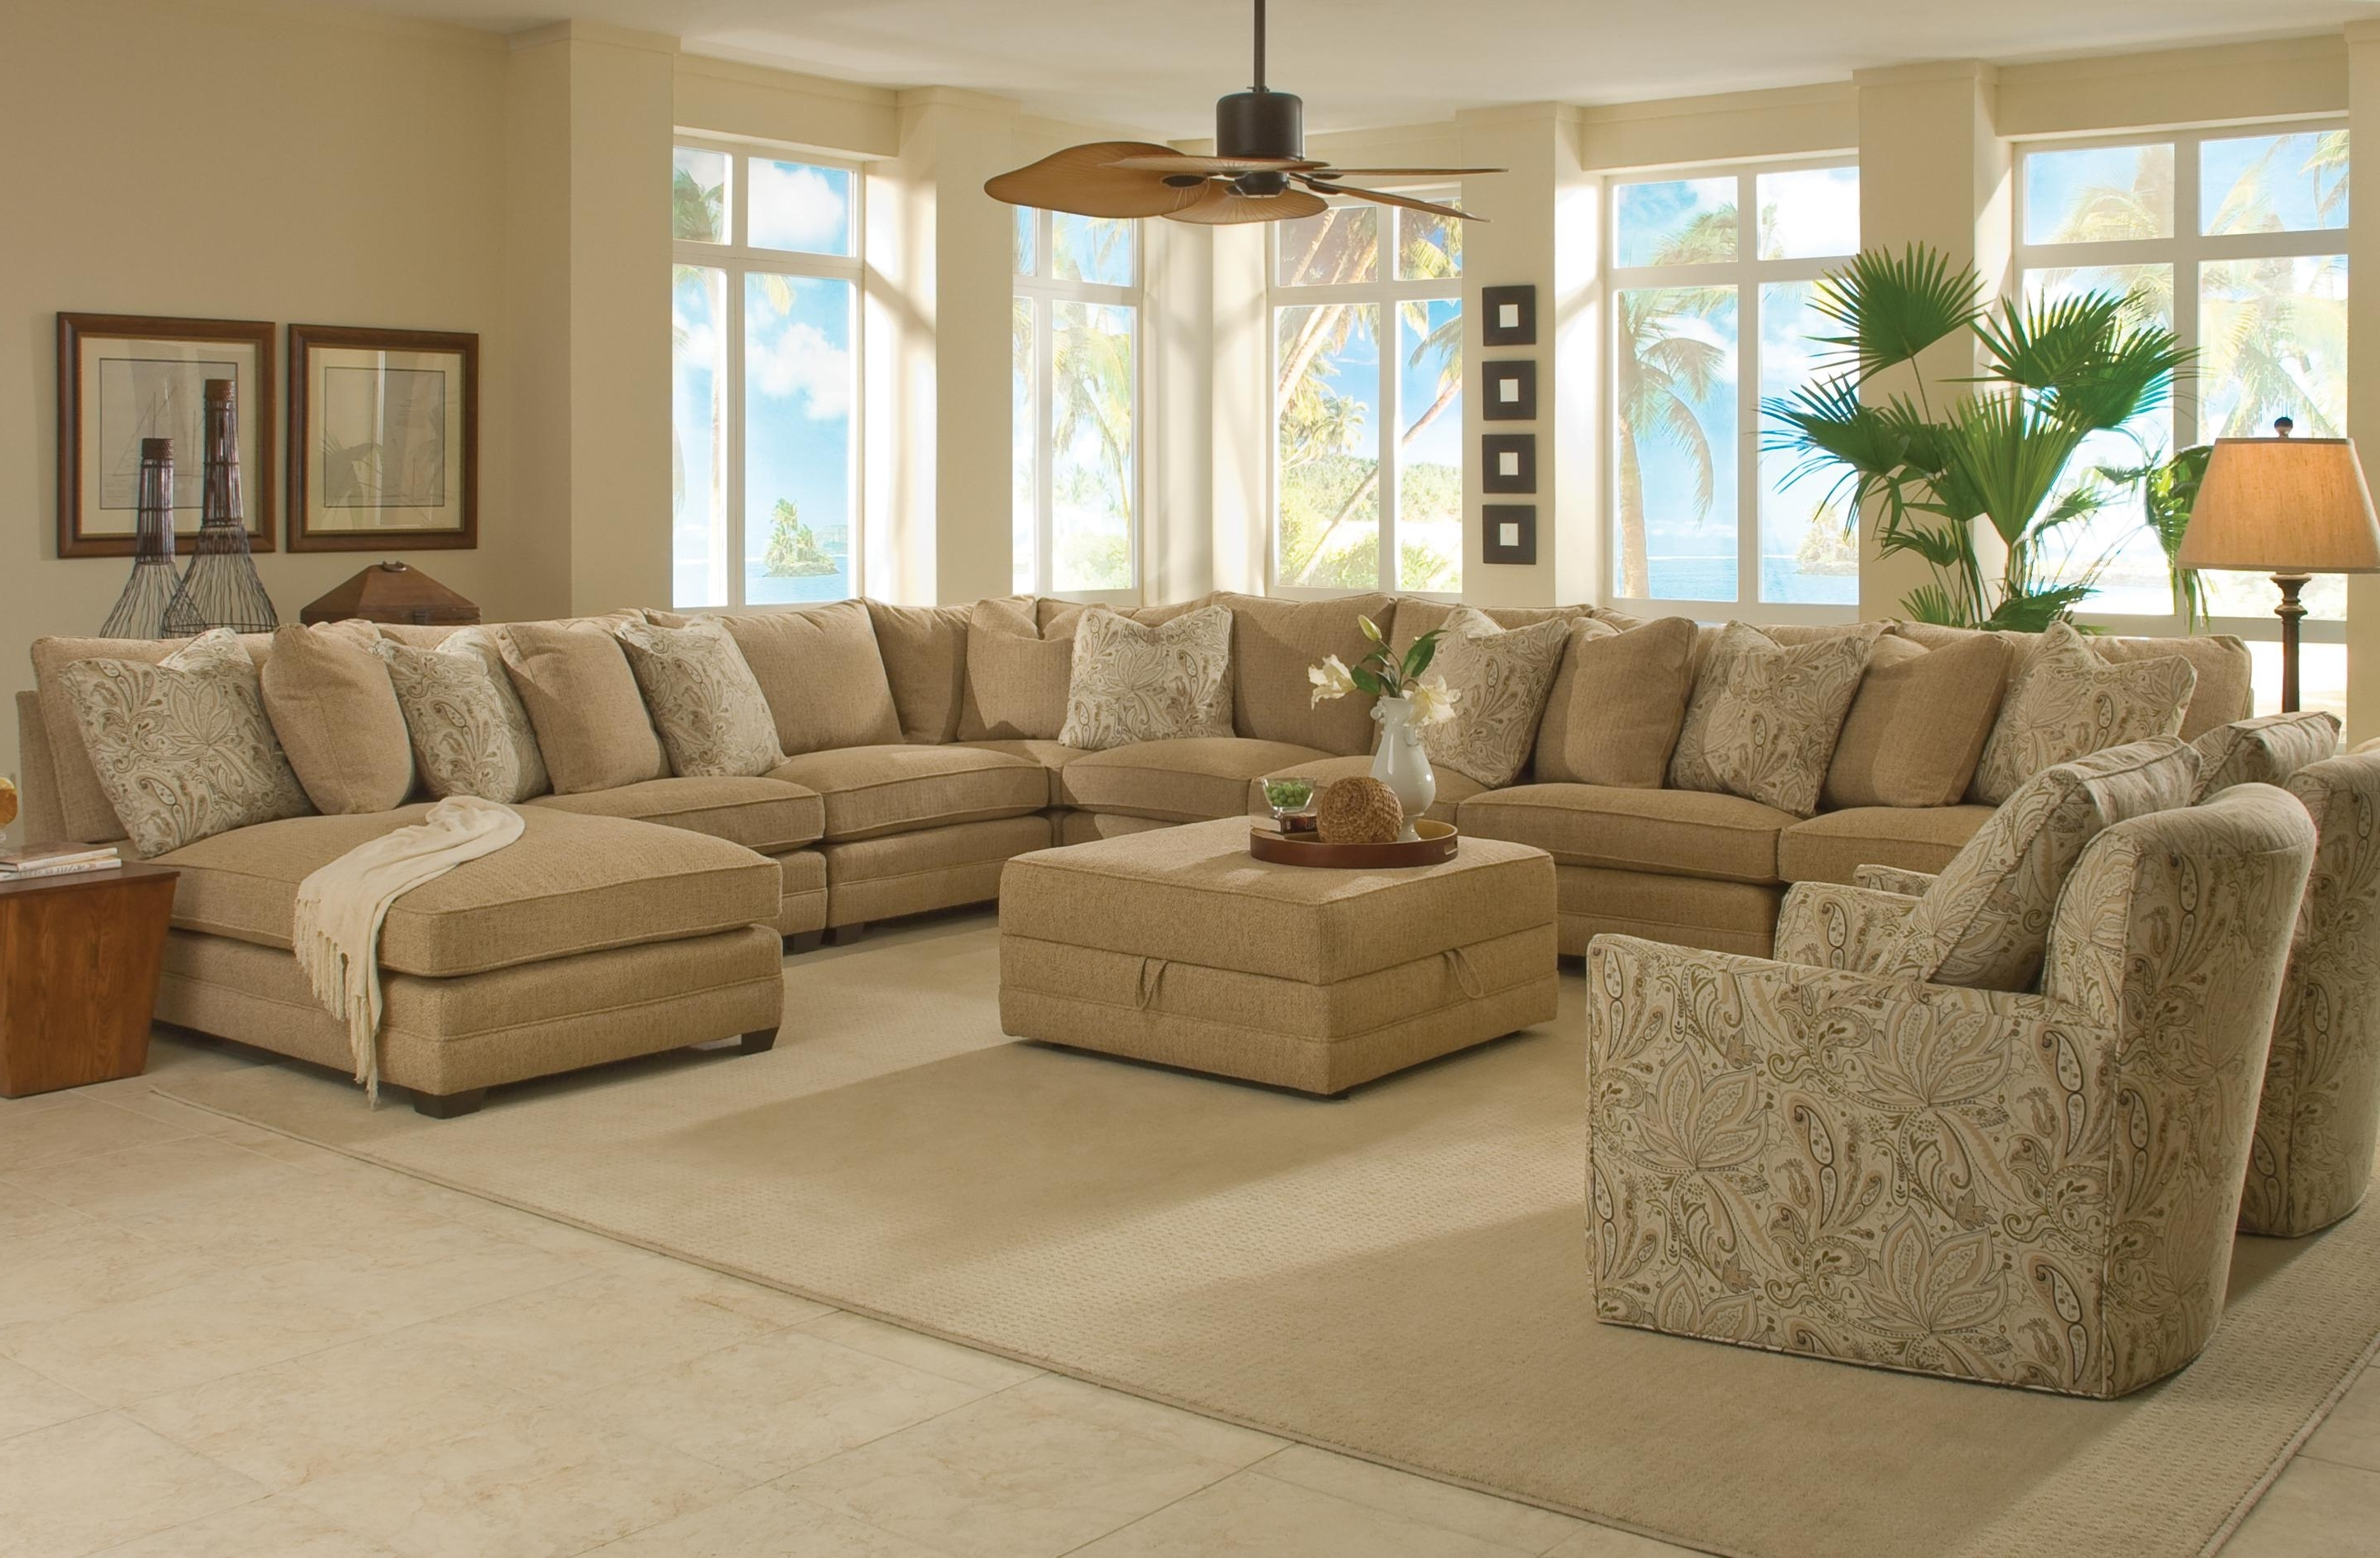 Extra Wide Sectional Sofa – Cleanupflorida Throughout Most Recent Sectional Sofas At Austin (Gallery 19 of 20)